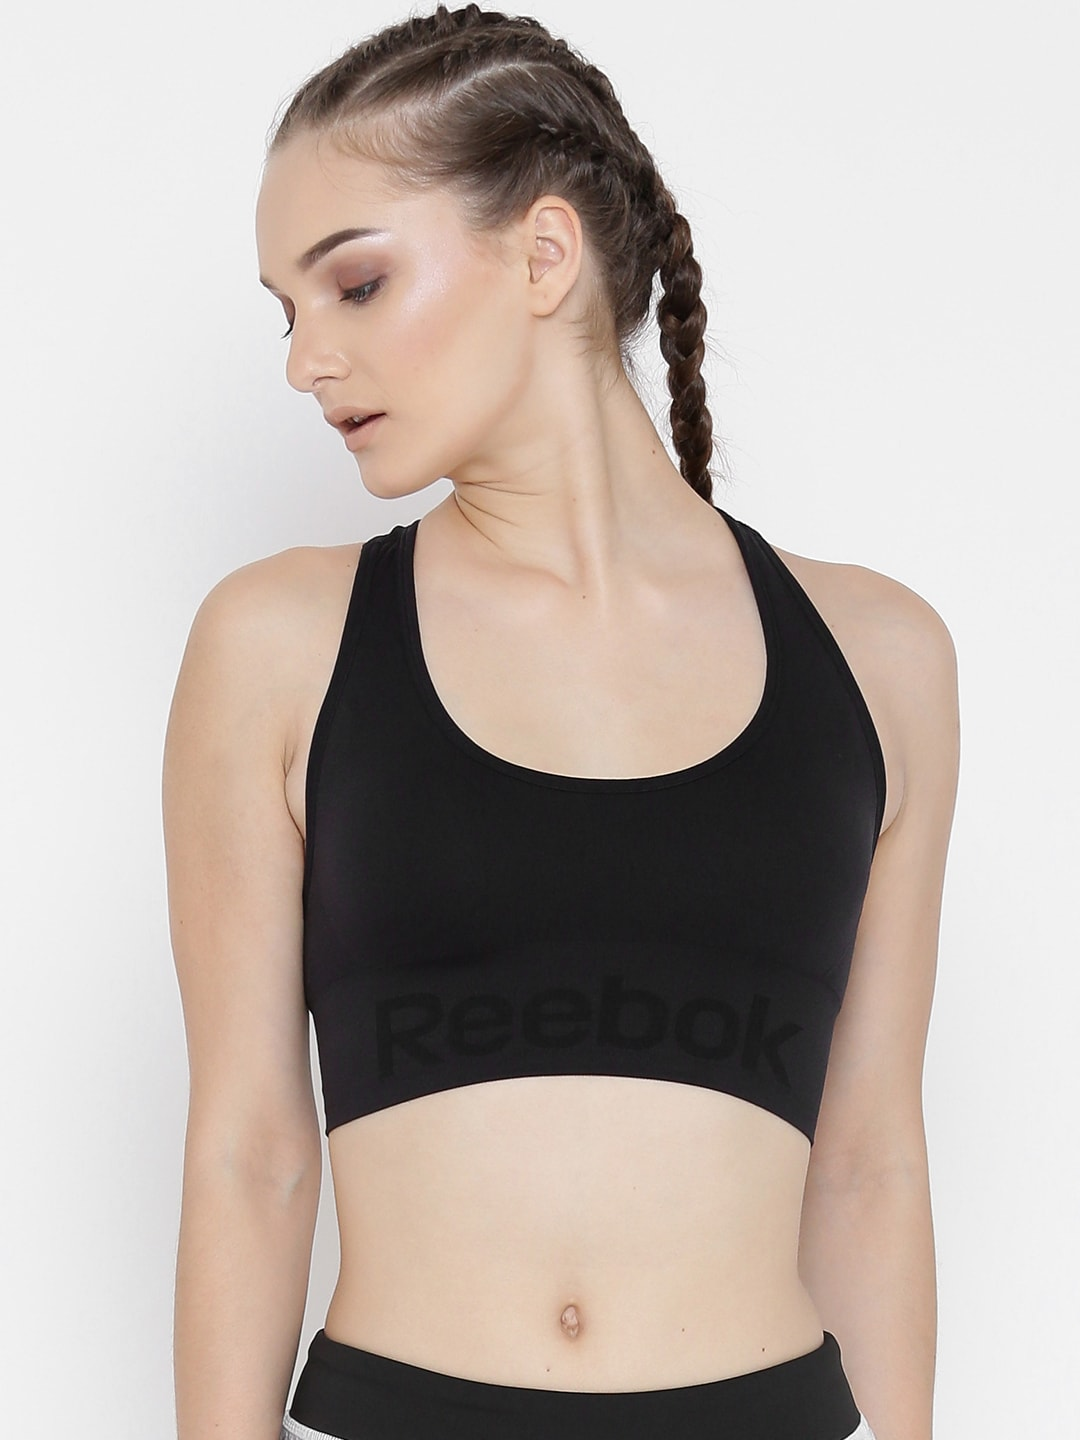 aaccf4eb13104 Black Sports Bra - Buy Black Sports Bra online in India